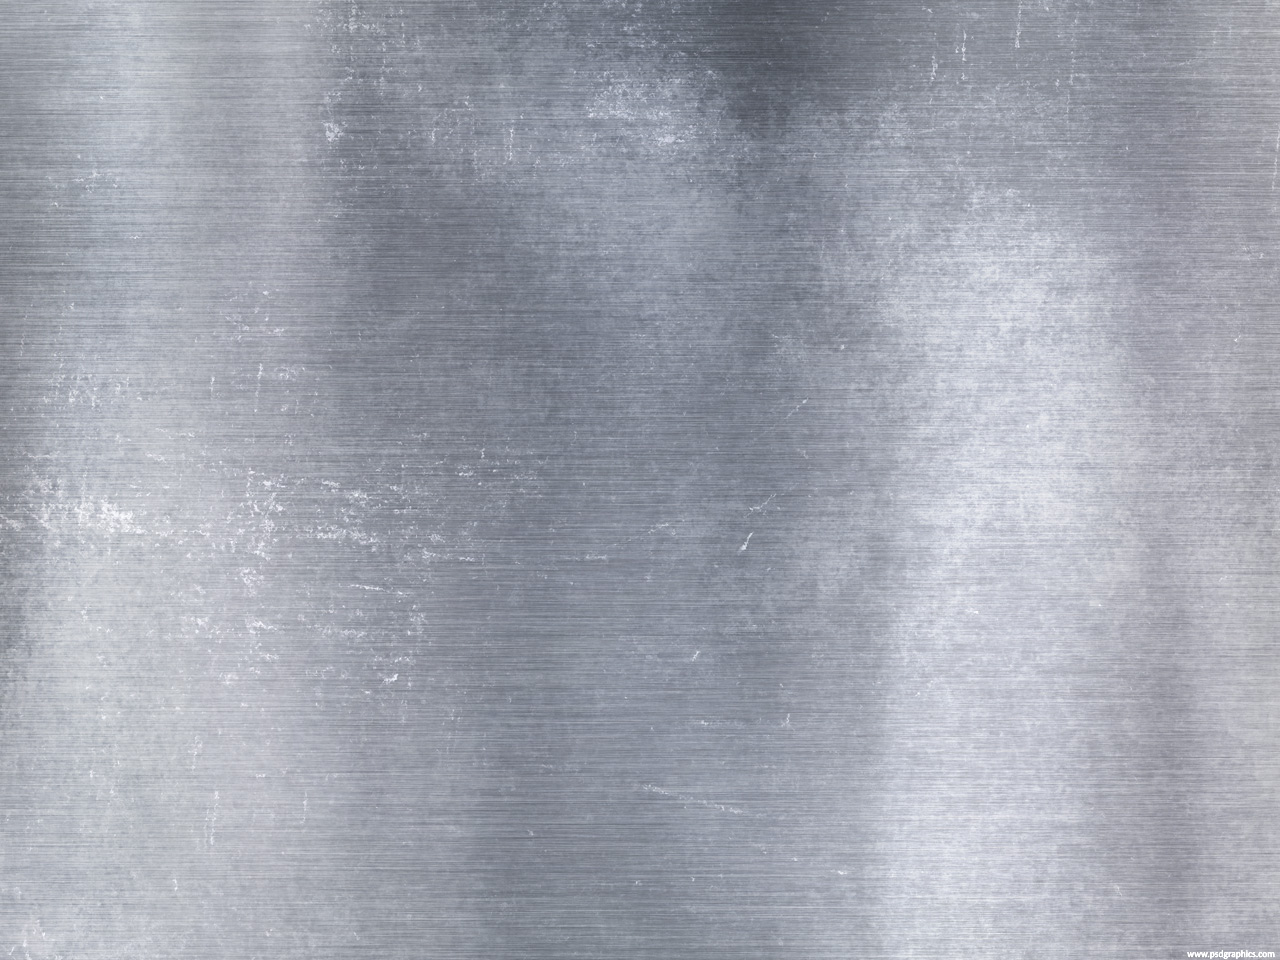 Medium size preview 1280x1024px Dirty metal surface texture 1280x960